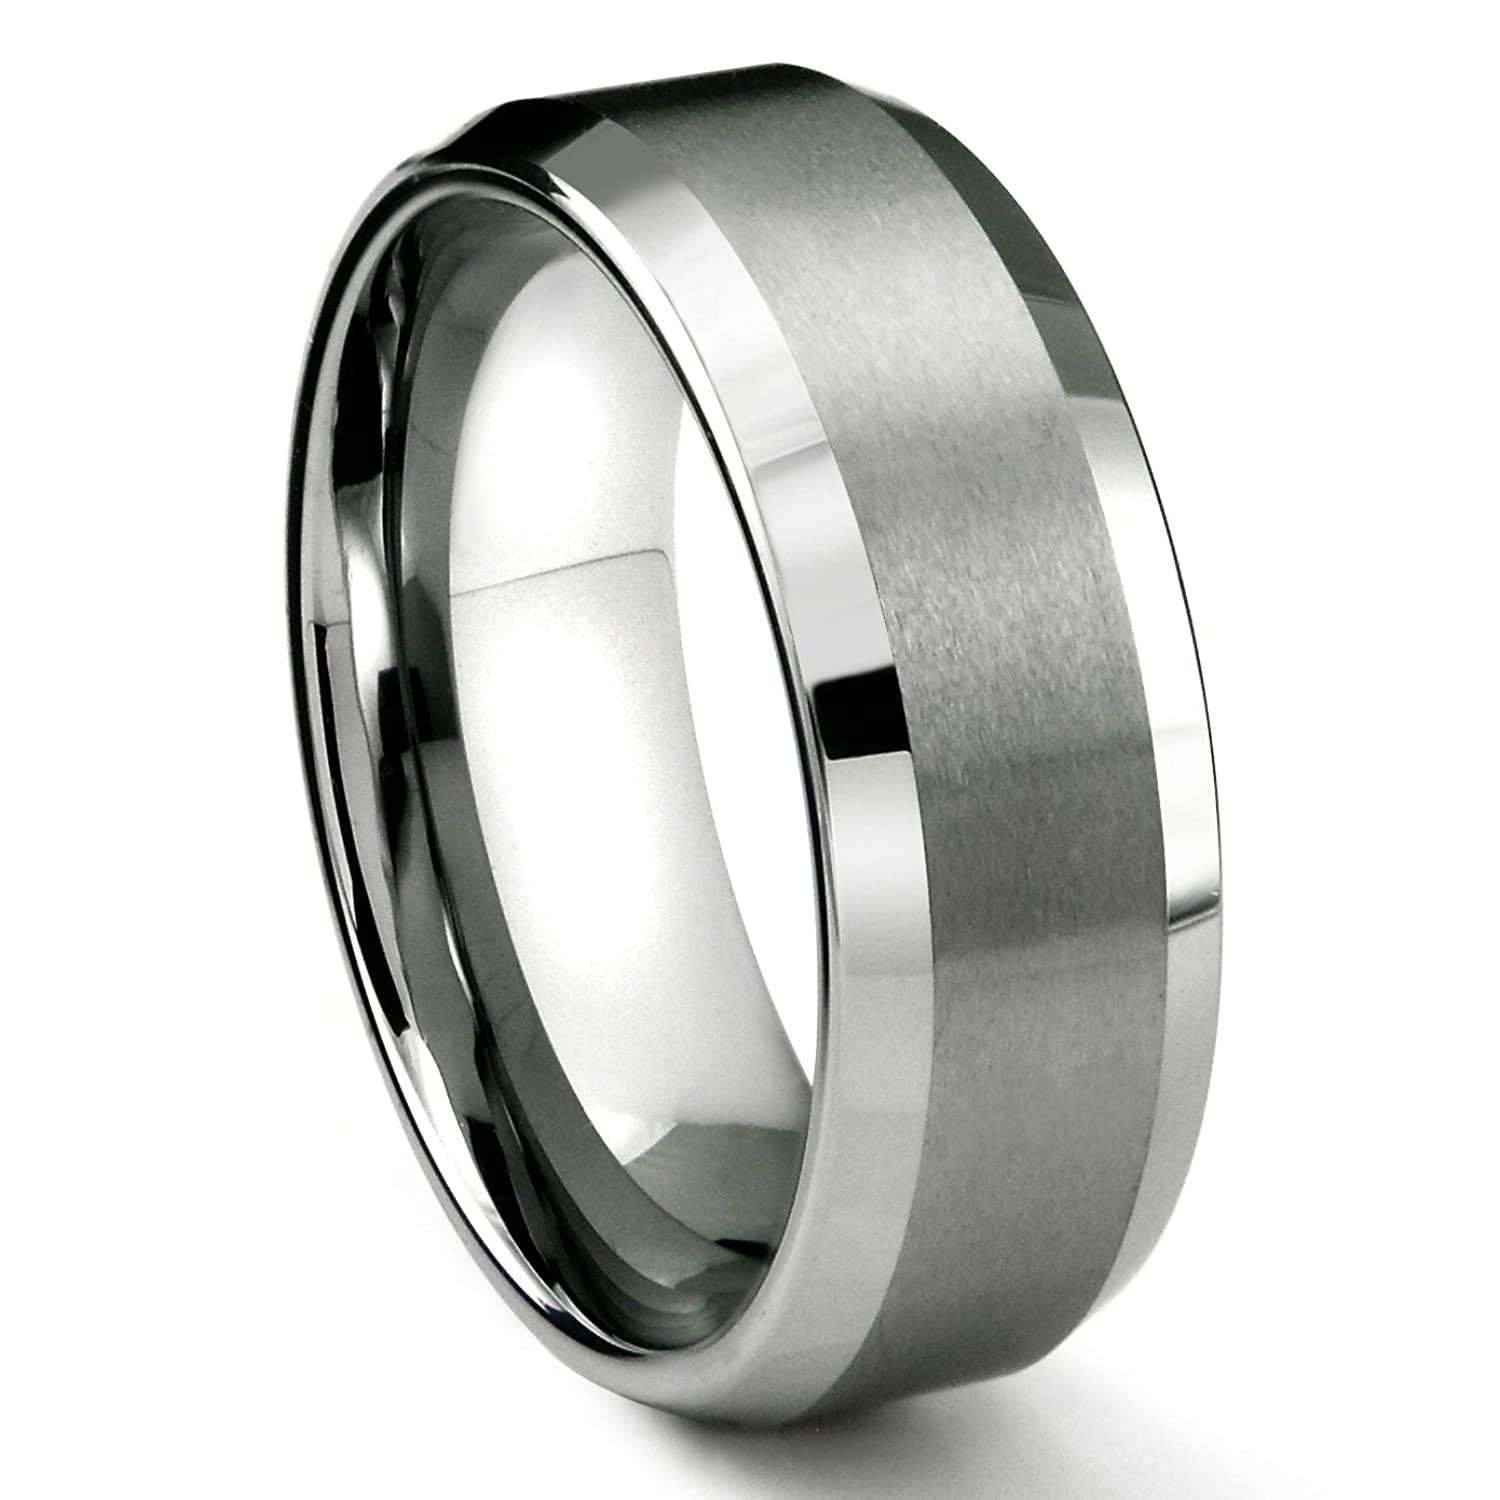 rings proof promise products anniversary engagement man wedding tungsten bands carbide mens scratch black band ring brushed red male